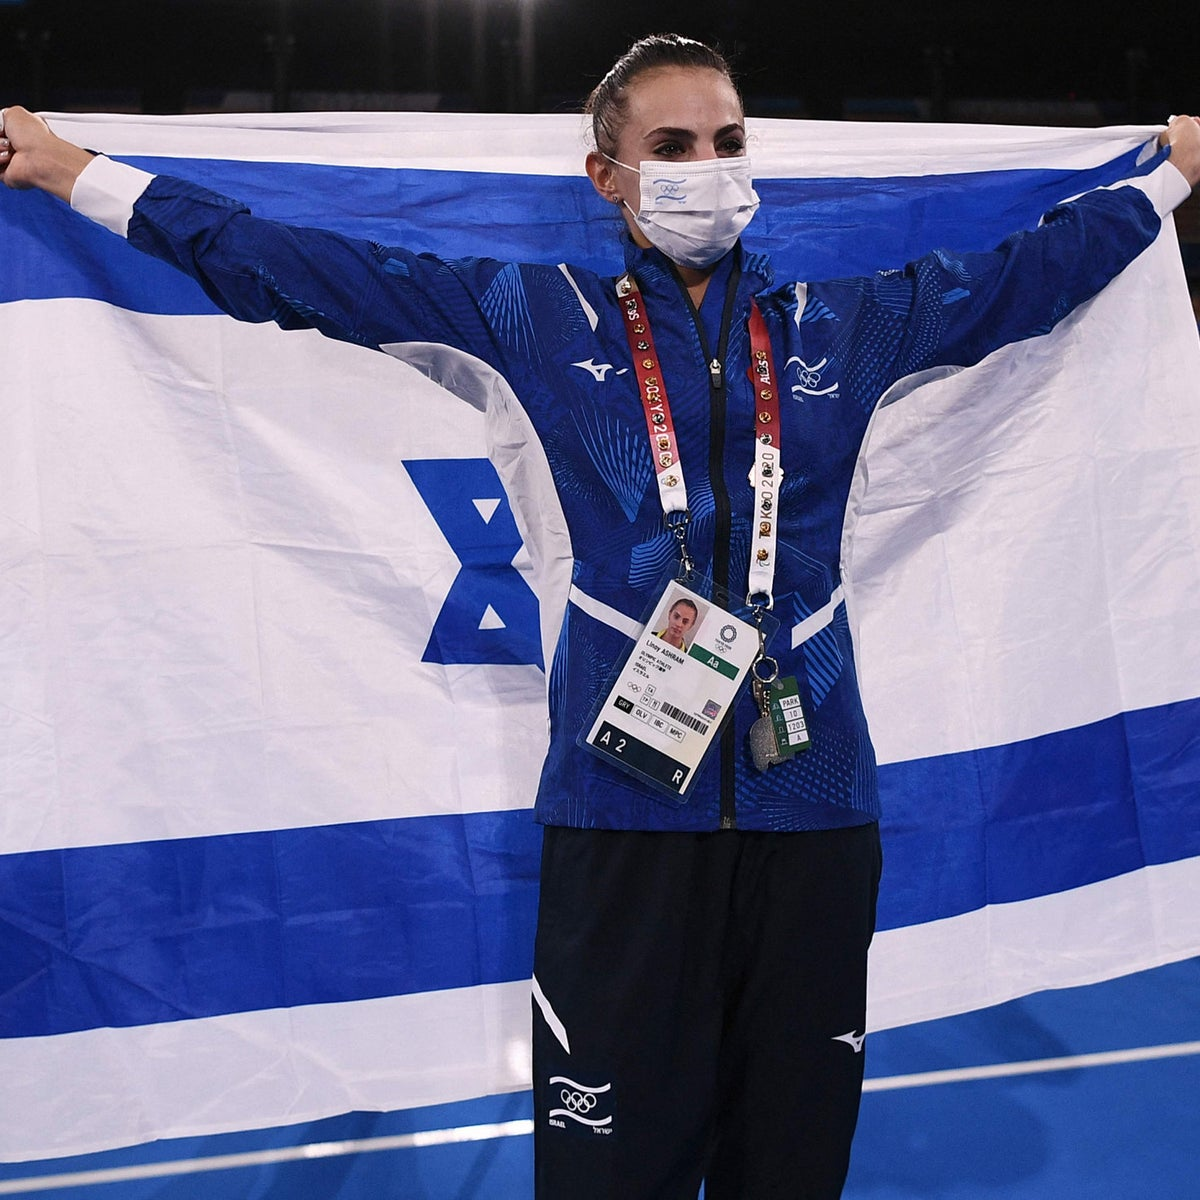 Linoy Ashram celebrating with the Israeli flag after her gold medal win in Tokyo, on Saturday.